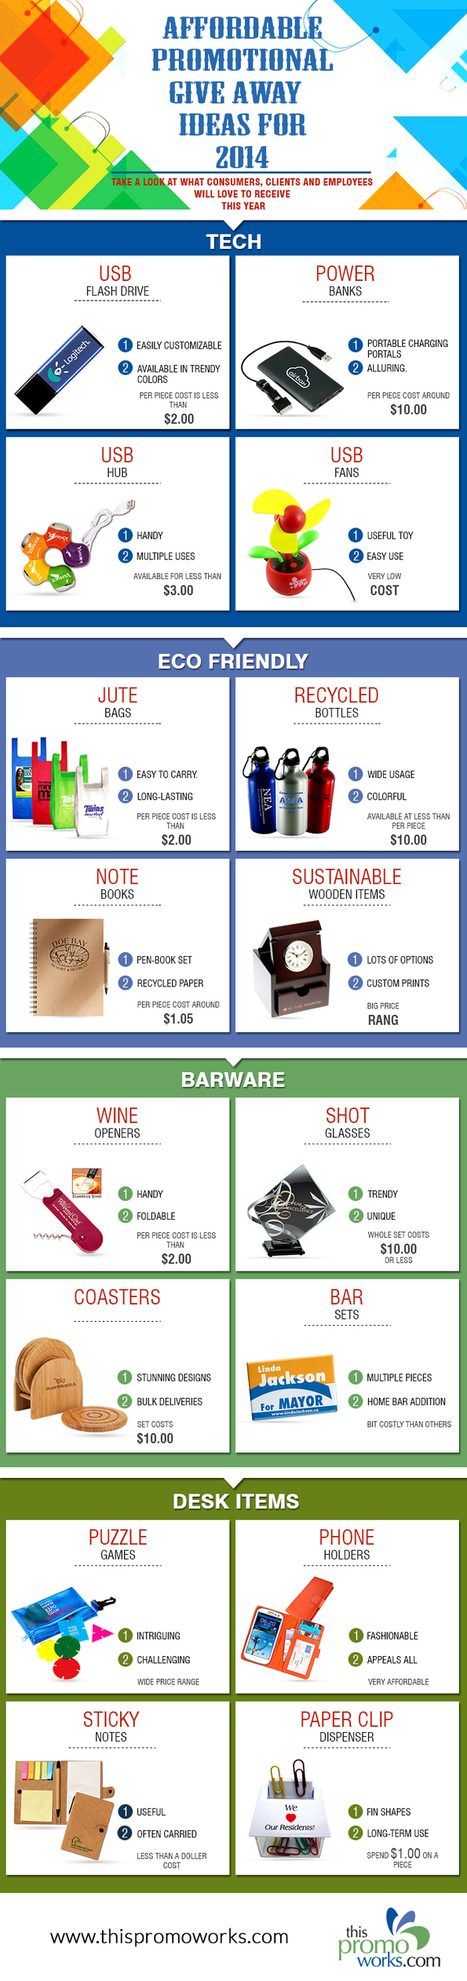 Effective Promotional Give Away Ideas | Promotional Items | Scoop.it